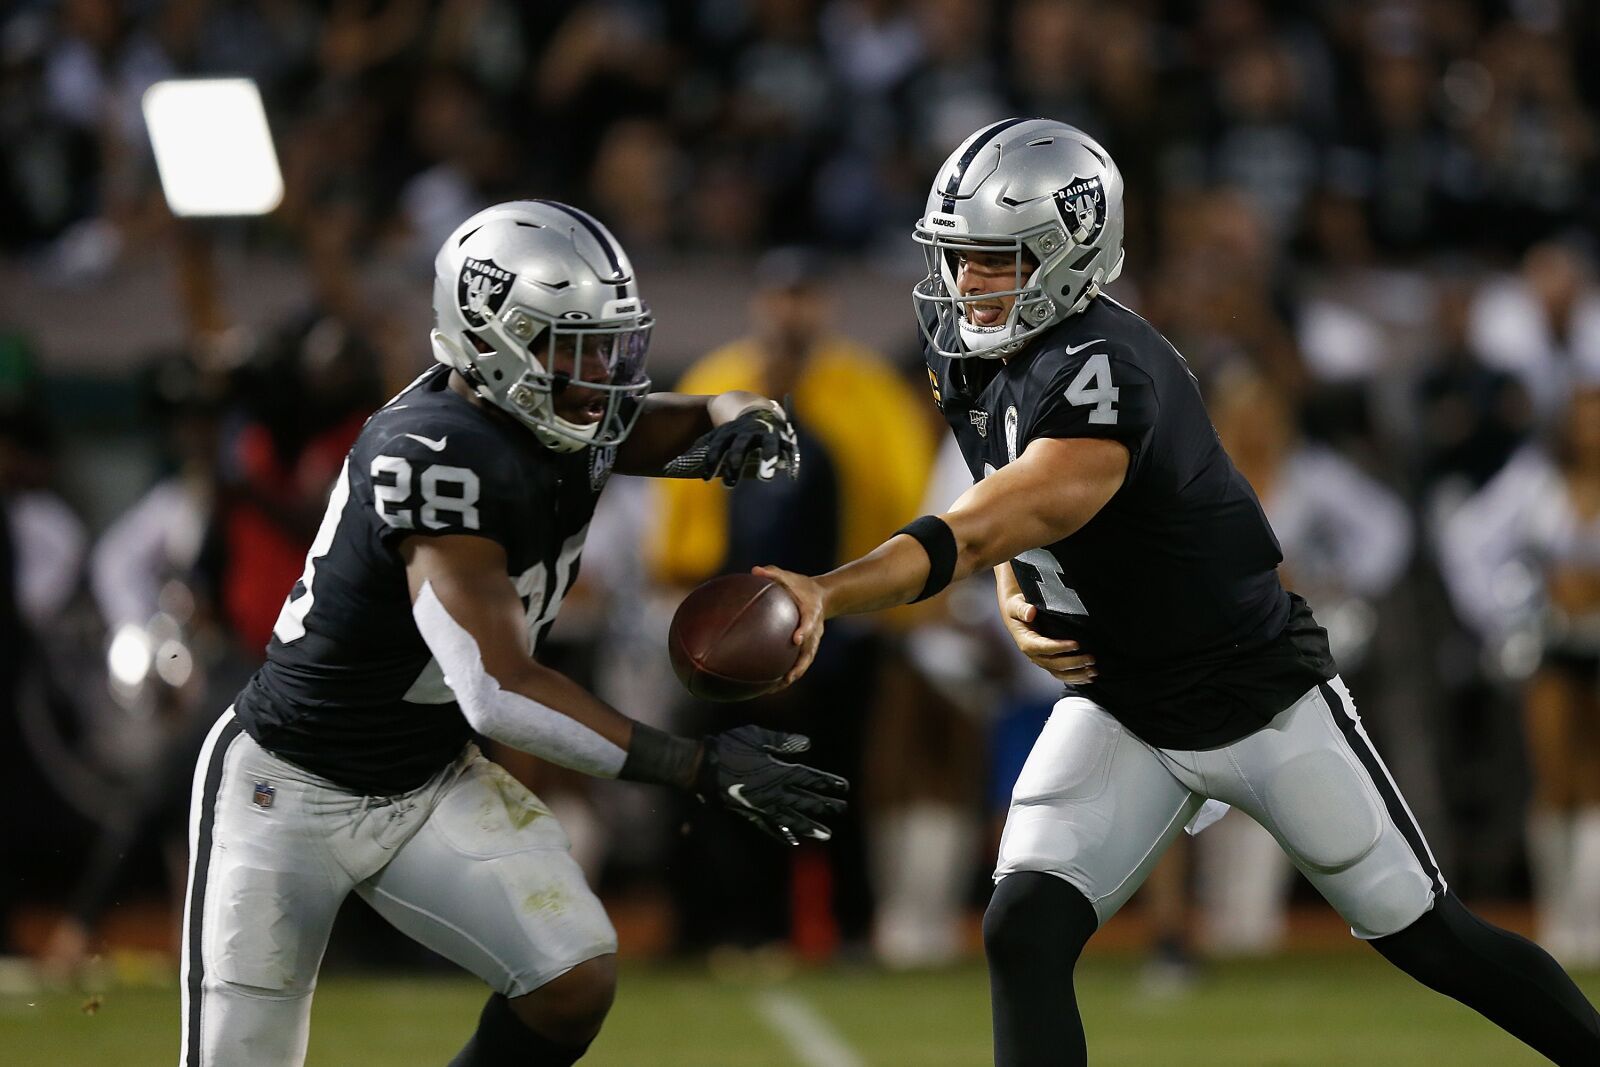 Oakland Raiders at Minnesota Vikings live stream: How to watch online